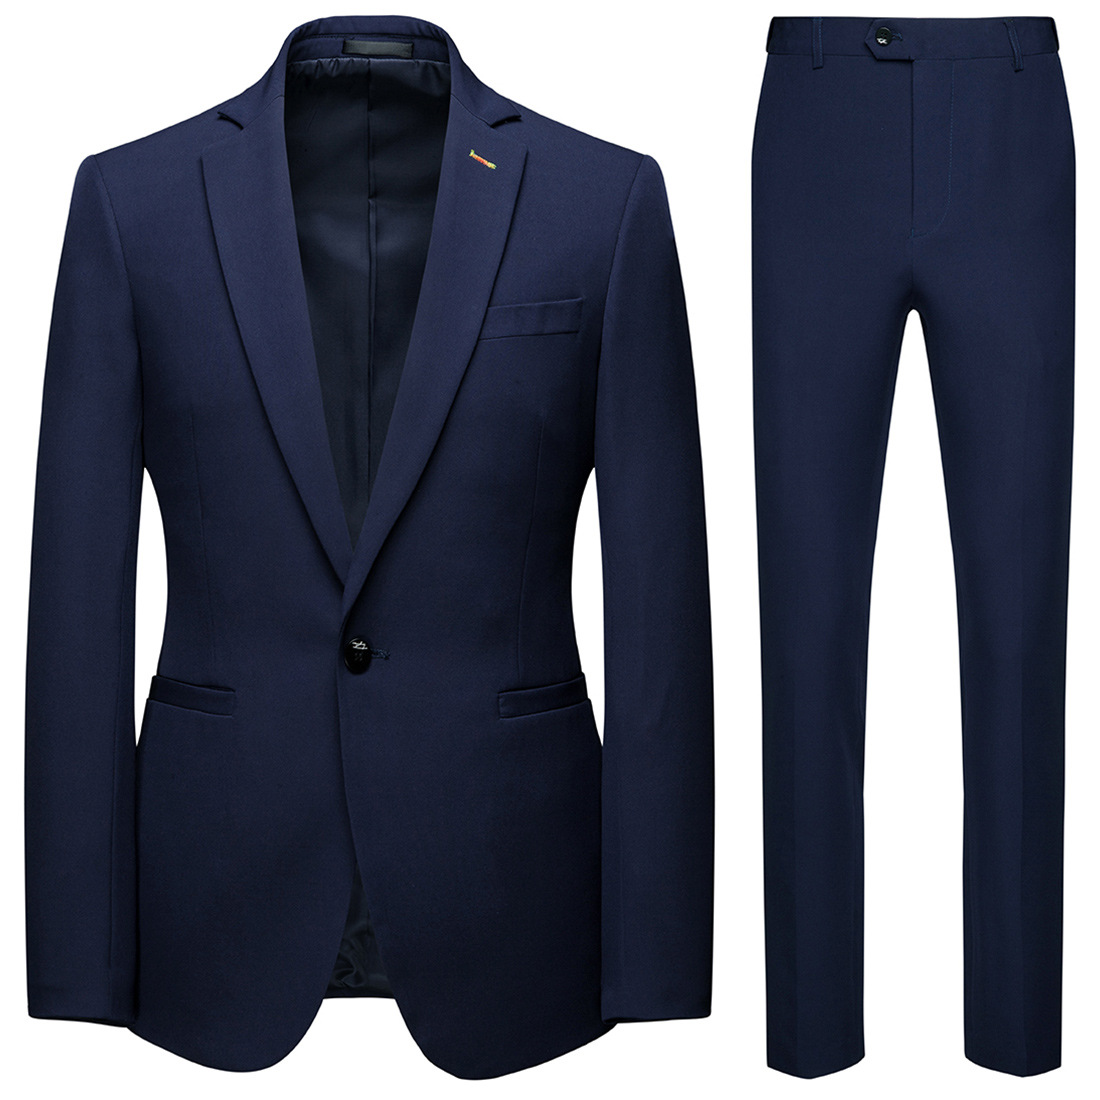 Boutique 2019 New Style Business Leisure Suit 2 Pieces Groom Best Man Wedding One-Button Suit Set Xf116